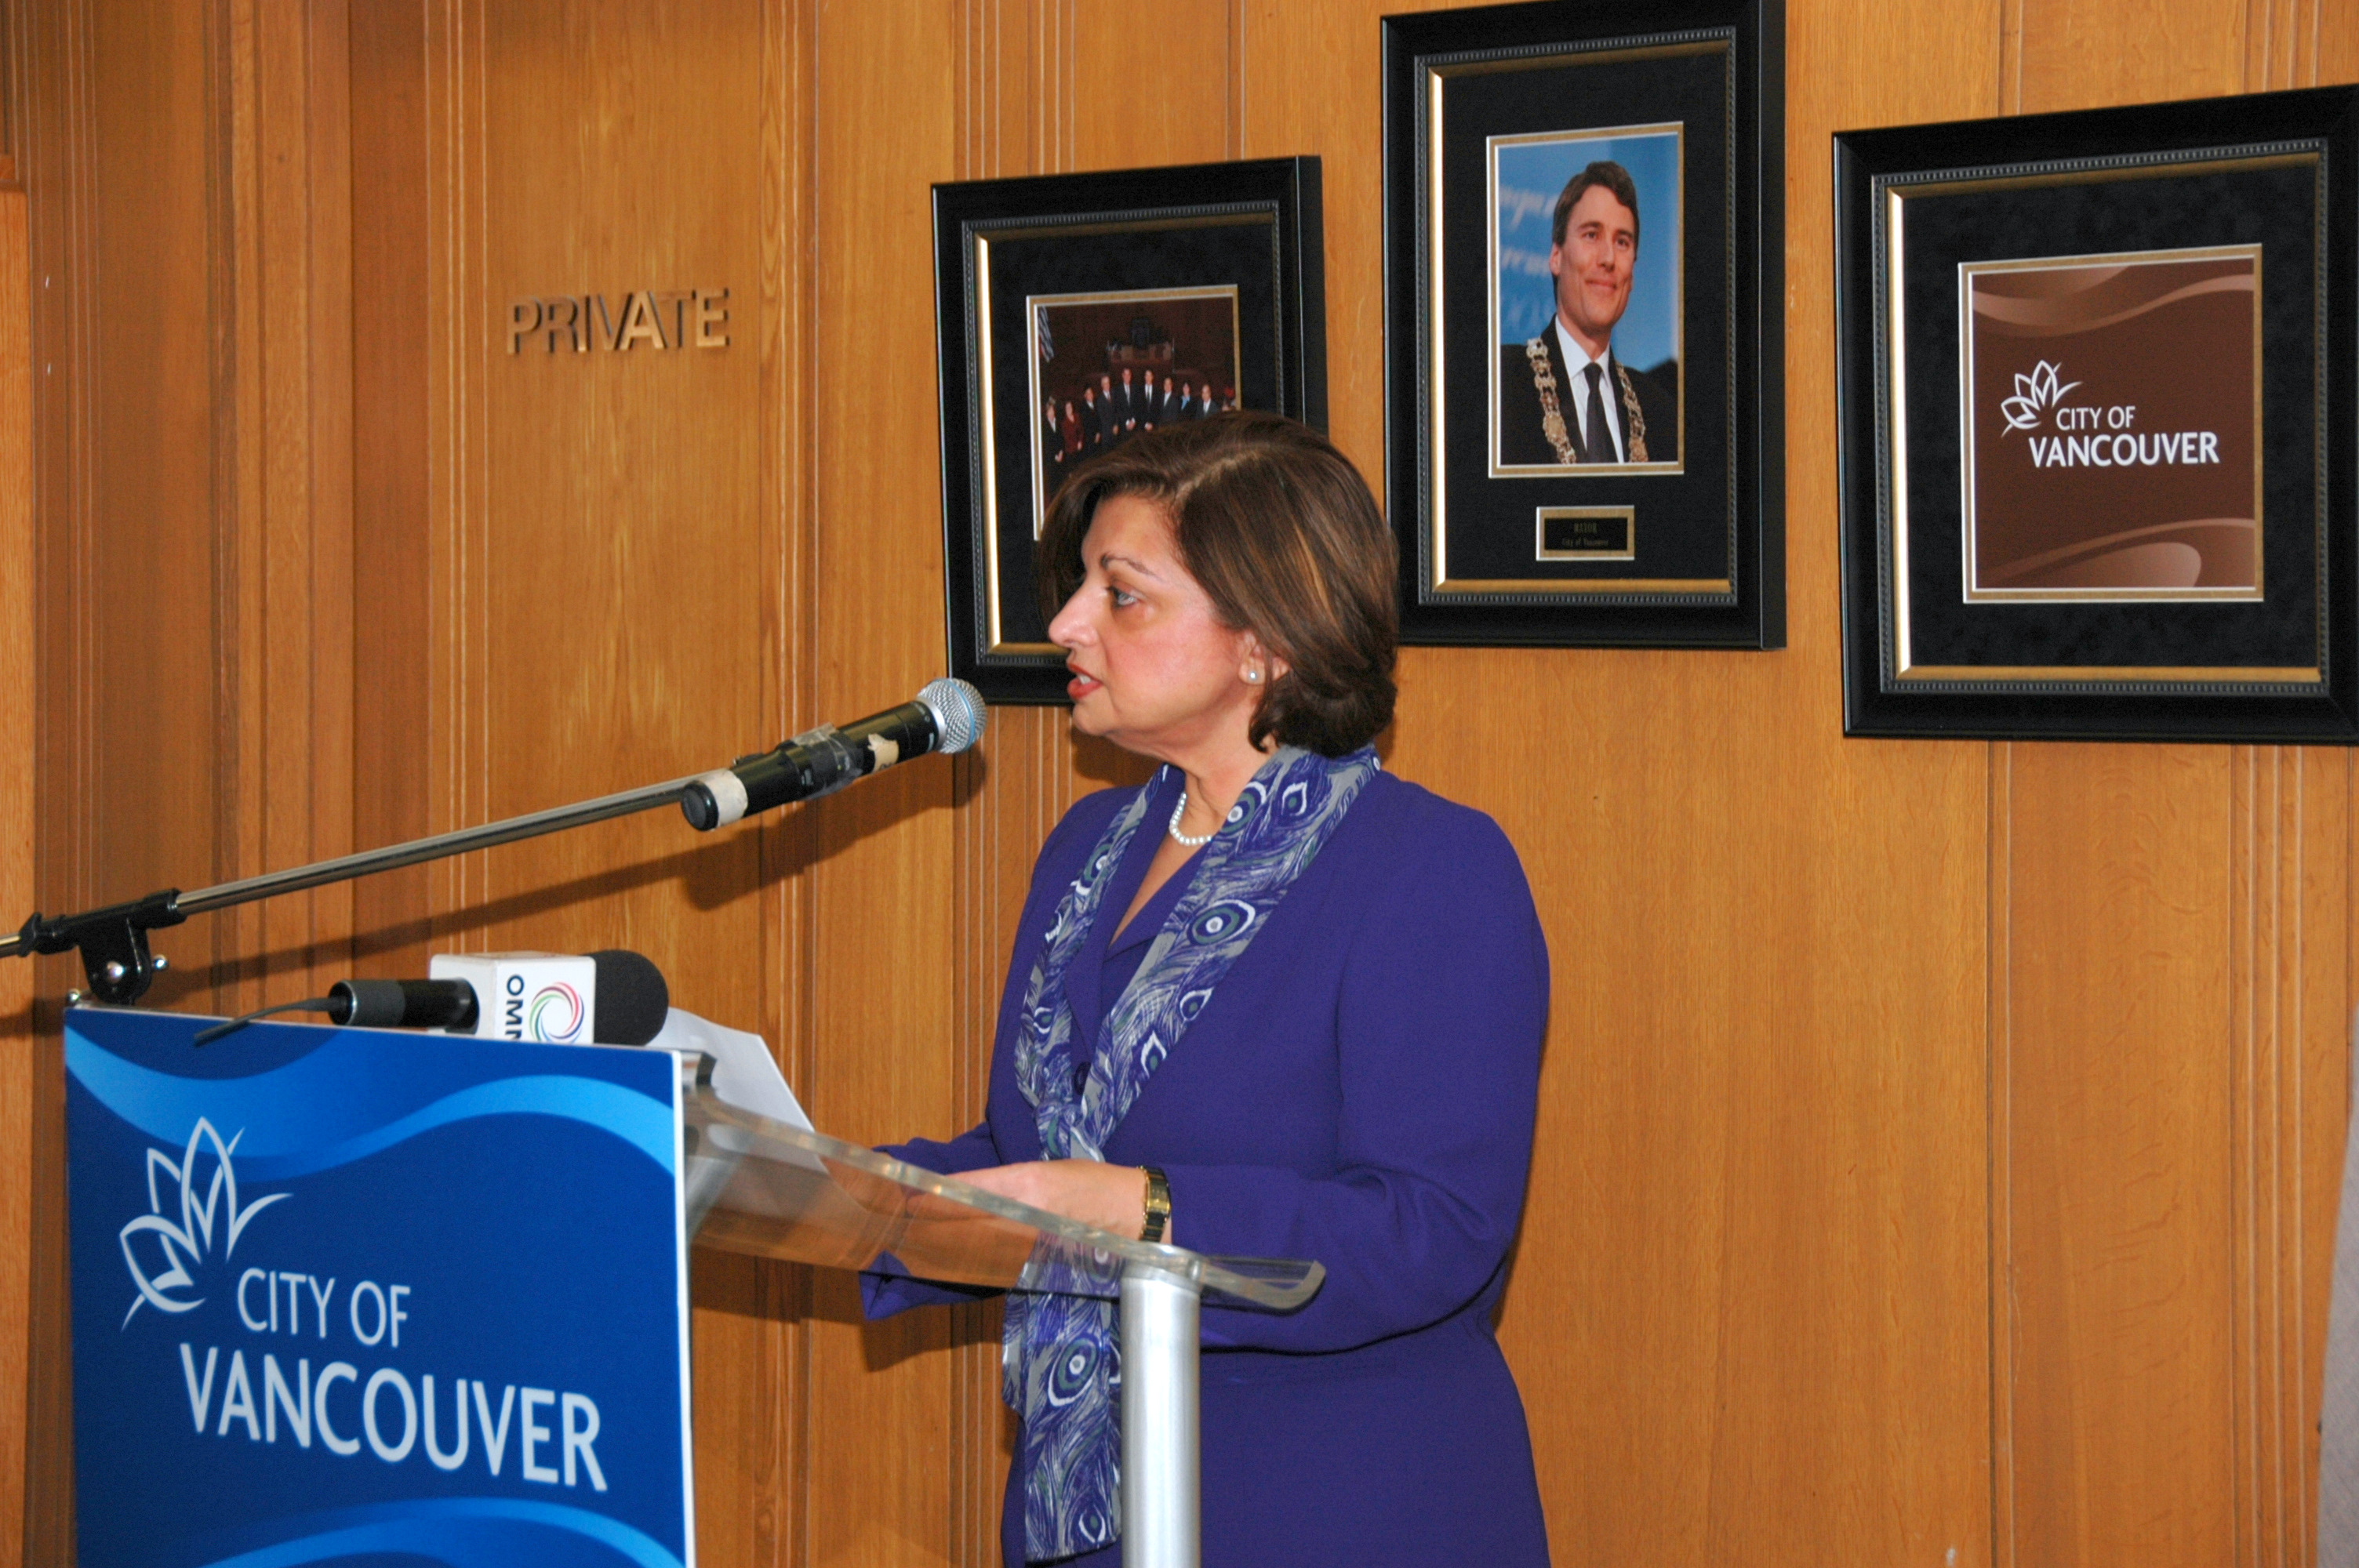 Samira Alibhai, President of the Ismaili Council for British Columbia, delivers the opening remarks of the Eid al-Adha commemoration at Vancouver City Hall. Photo: Sultan Bhalo